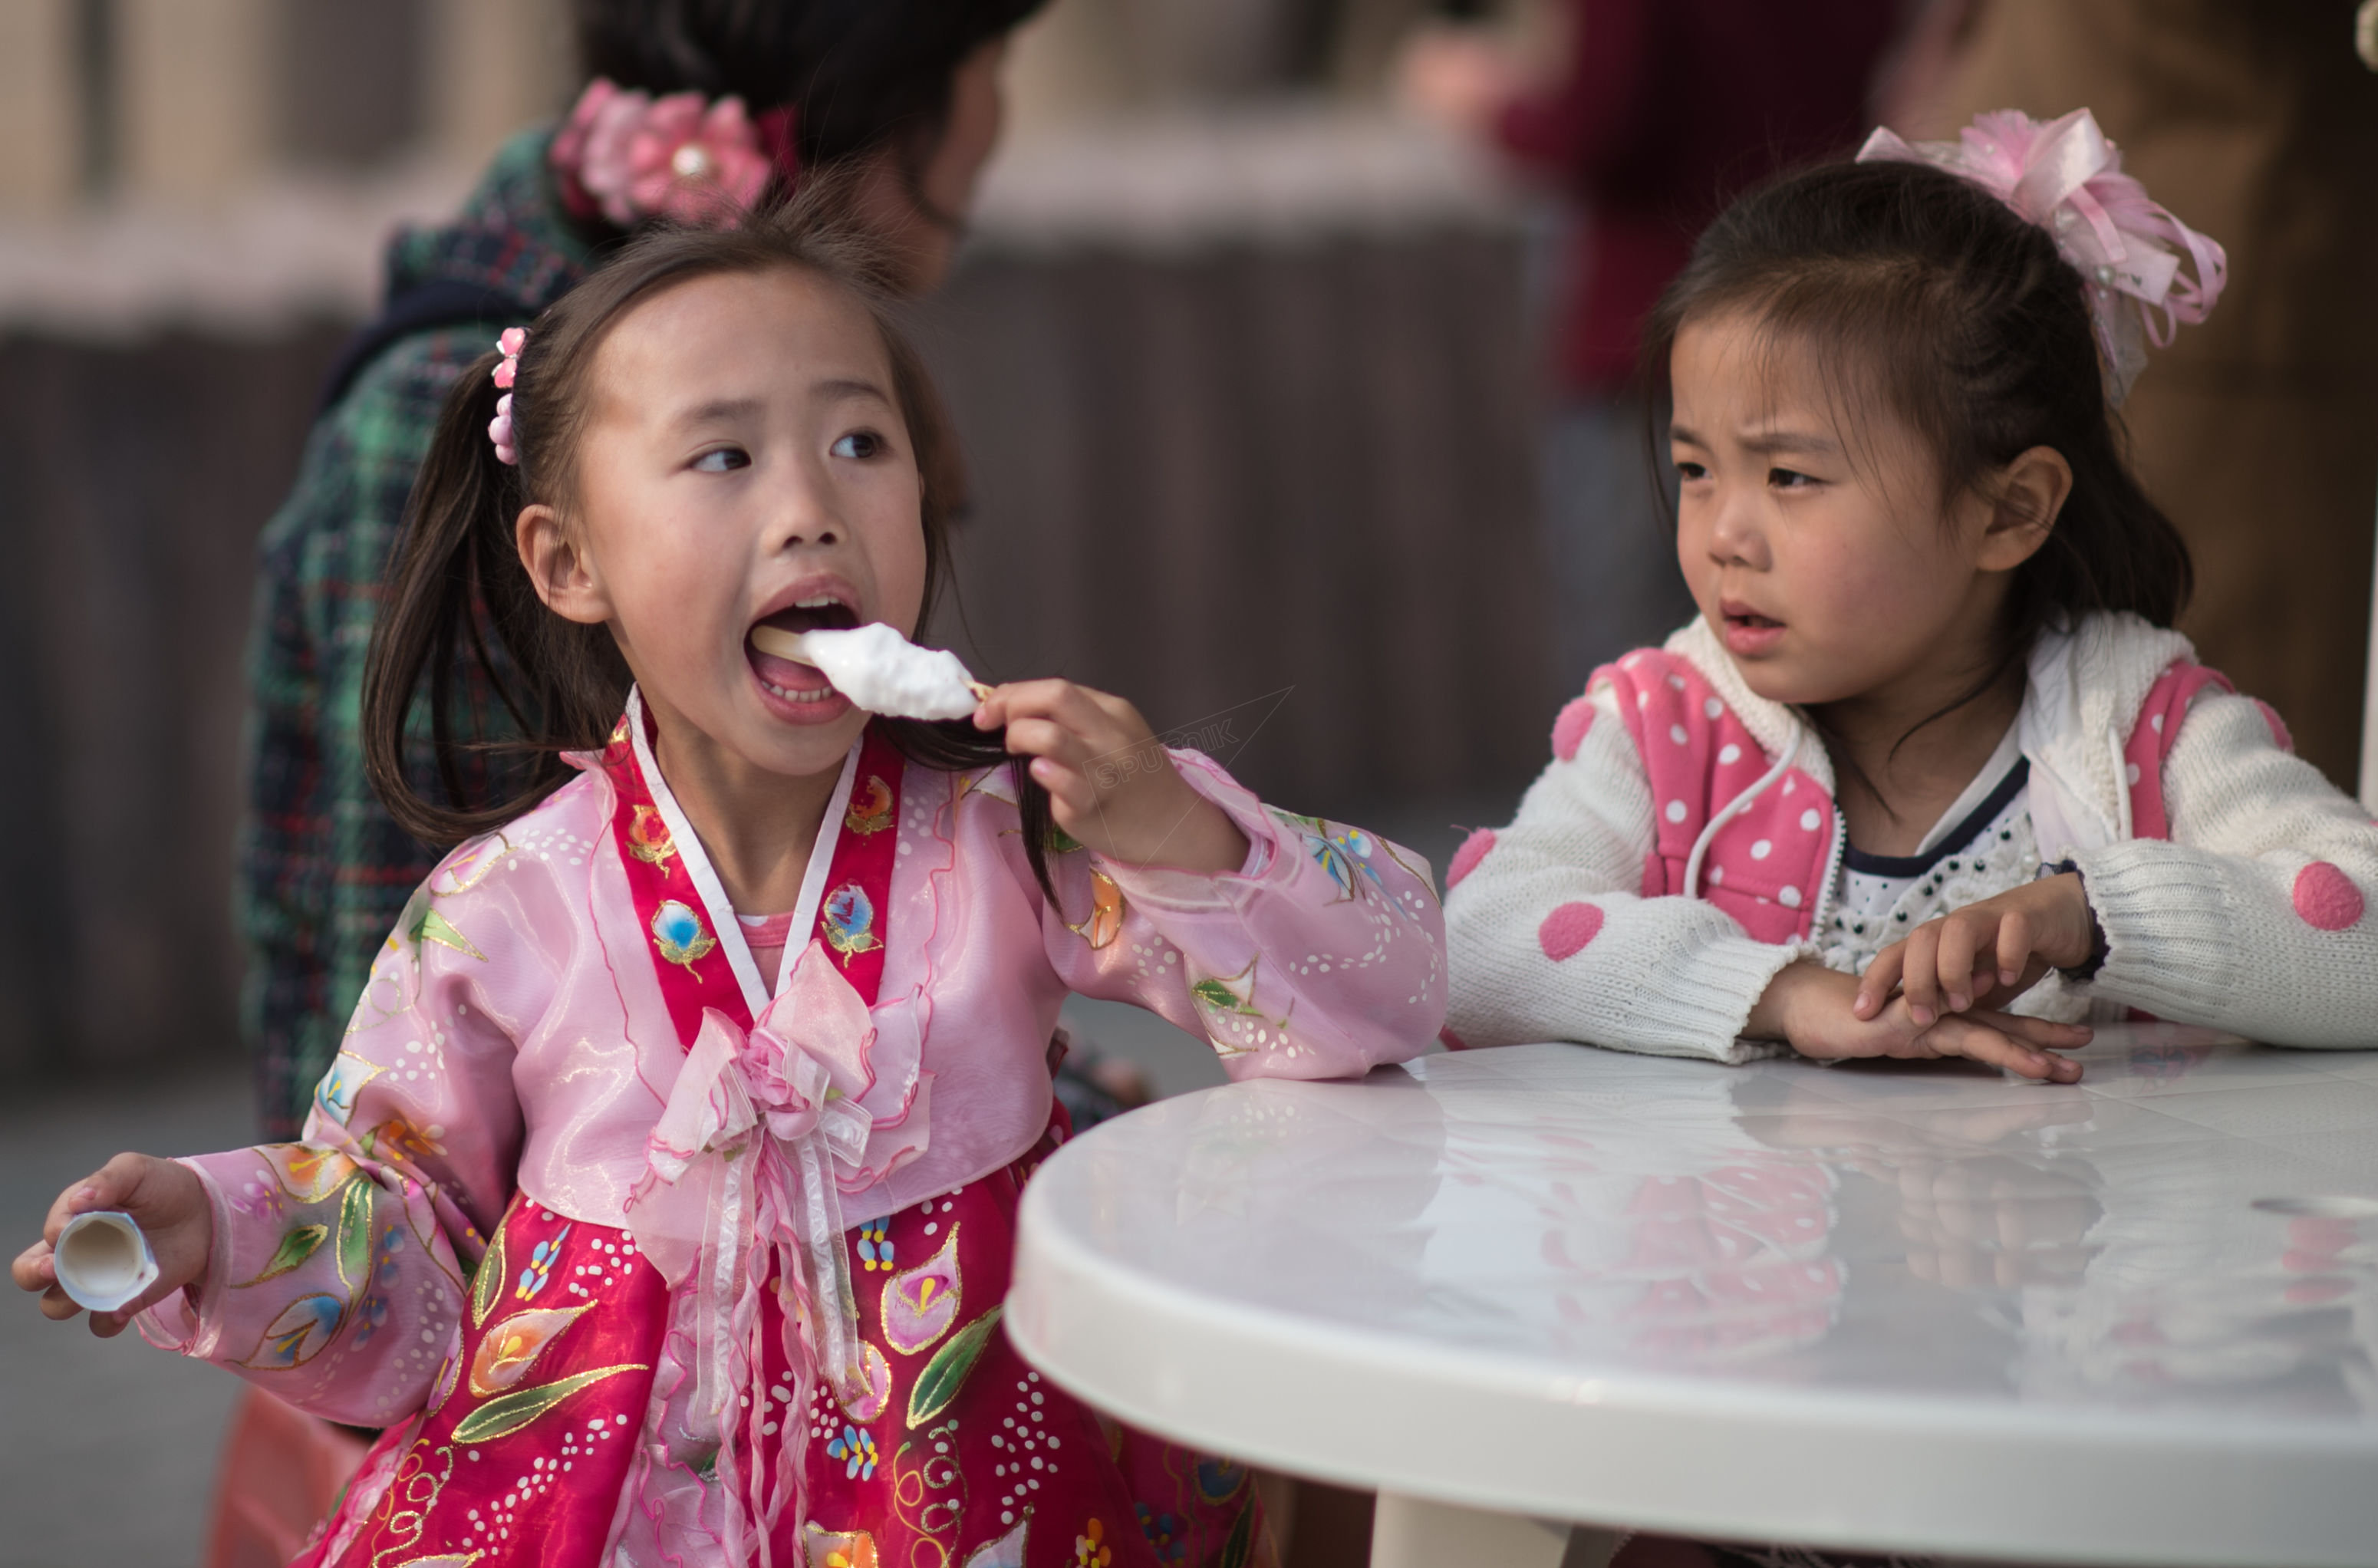 Little girls eating ice-cream